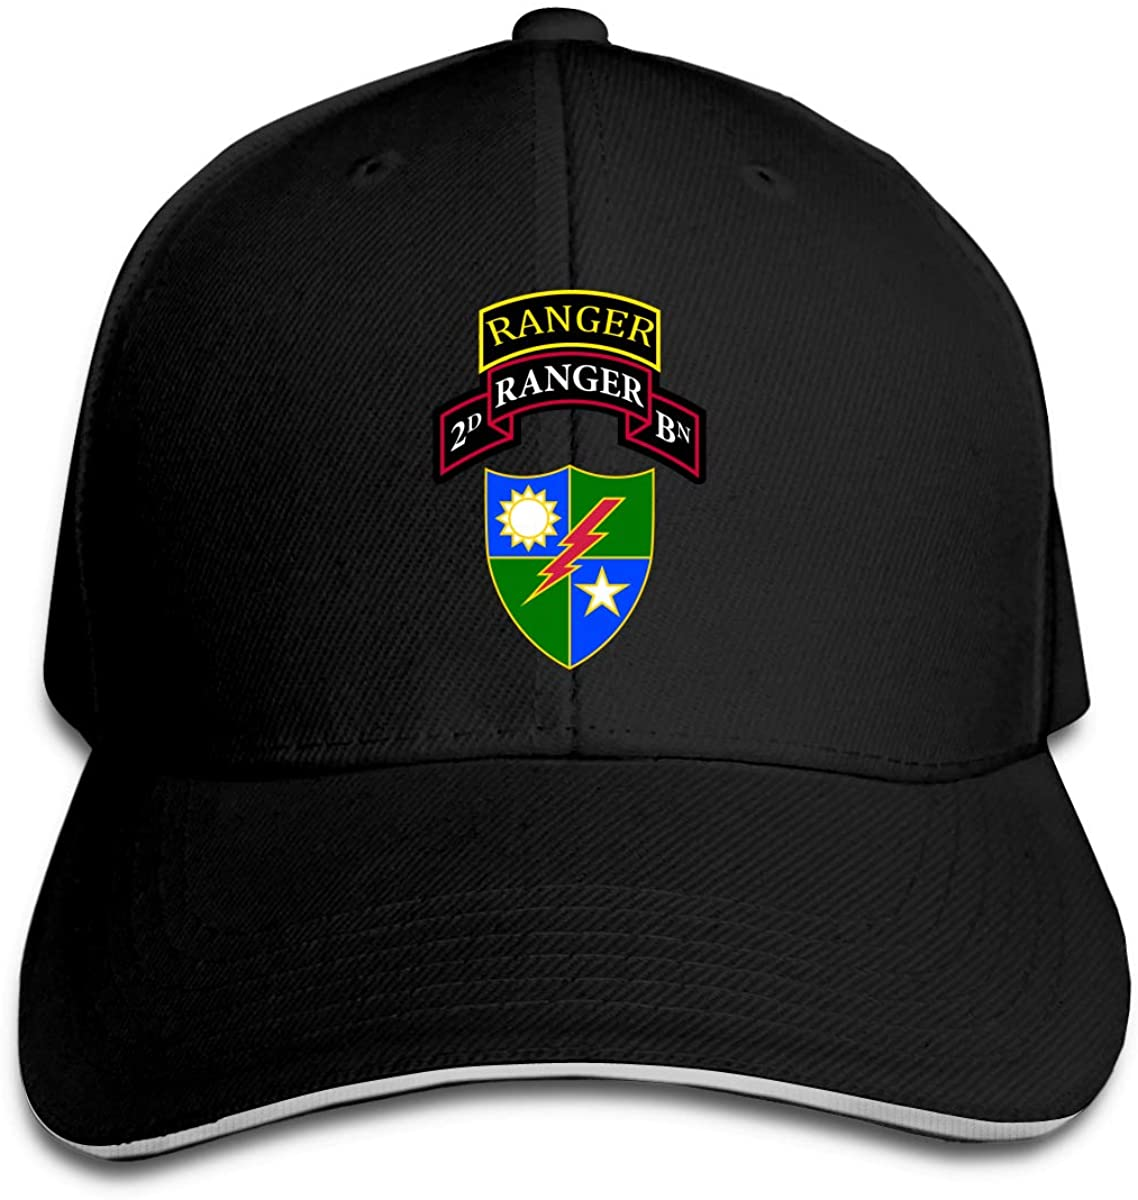 Us Army 2th Ranger Battalio Classic Baseball Cap Unisex Cotton Adjustable Hat for Kids Teens Adults